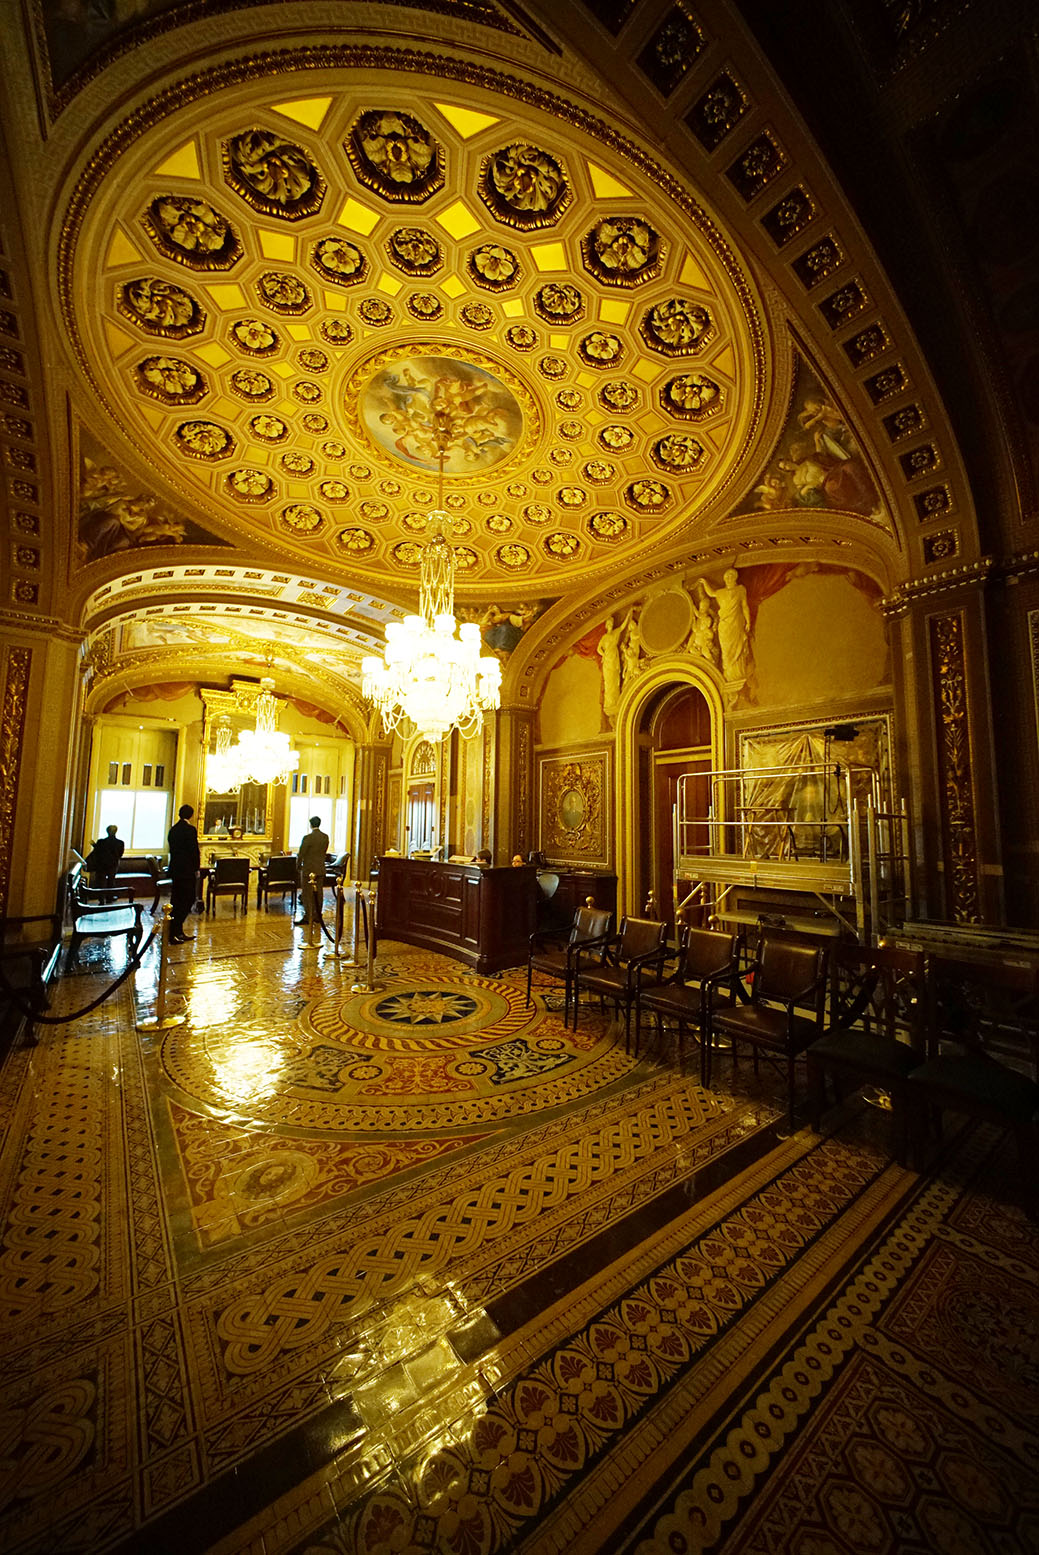 In a much warmer scene inside the Capitol, chandeliers are reflected in the Senate Reception Room.